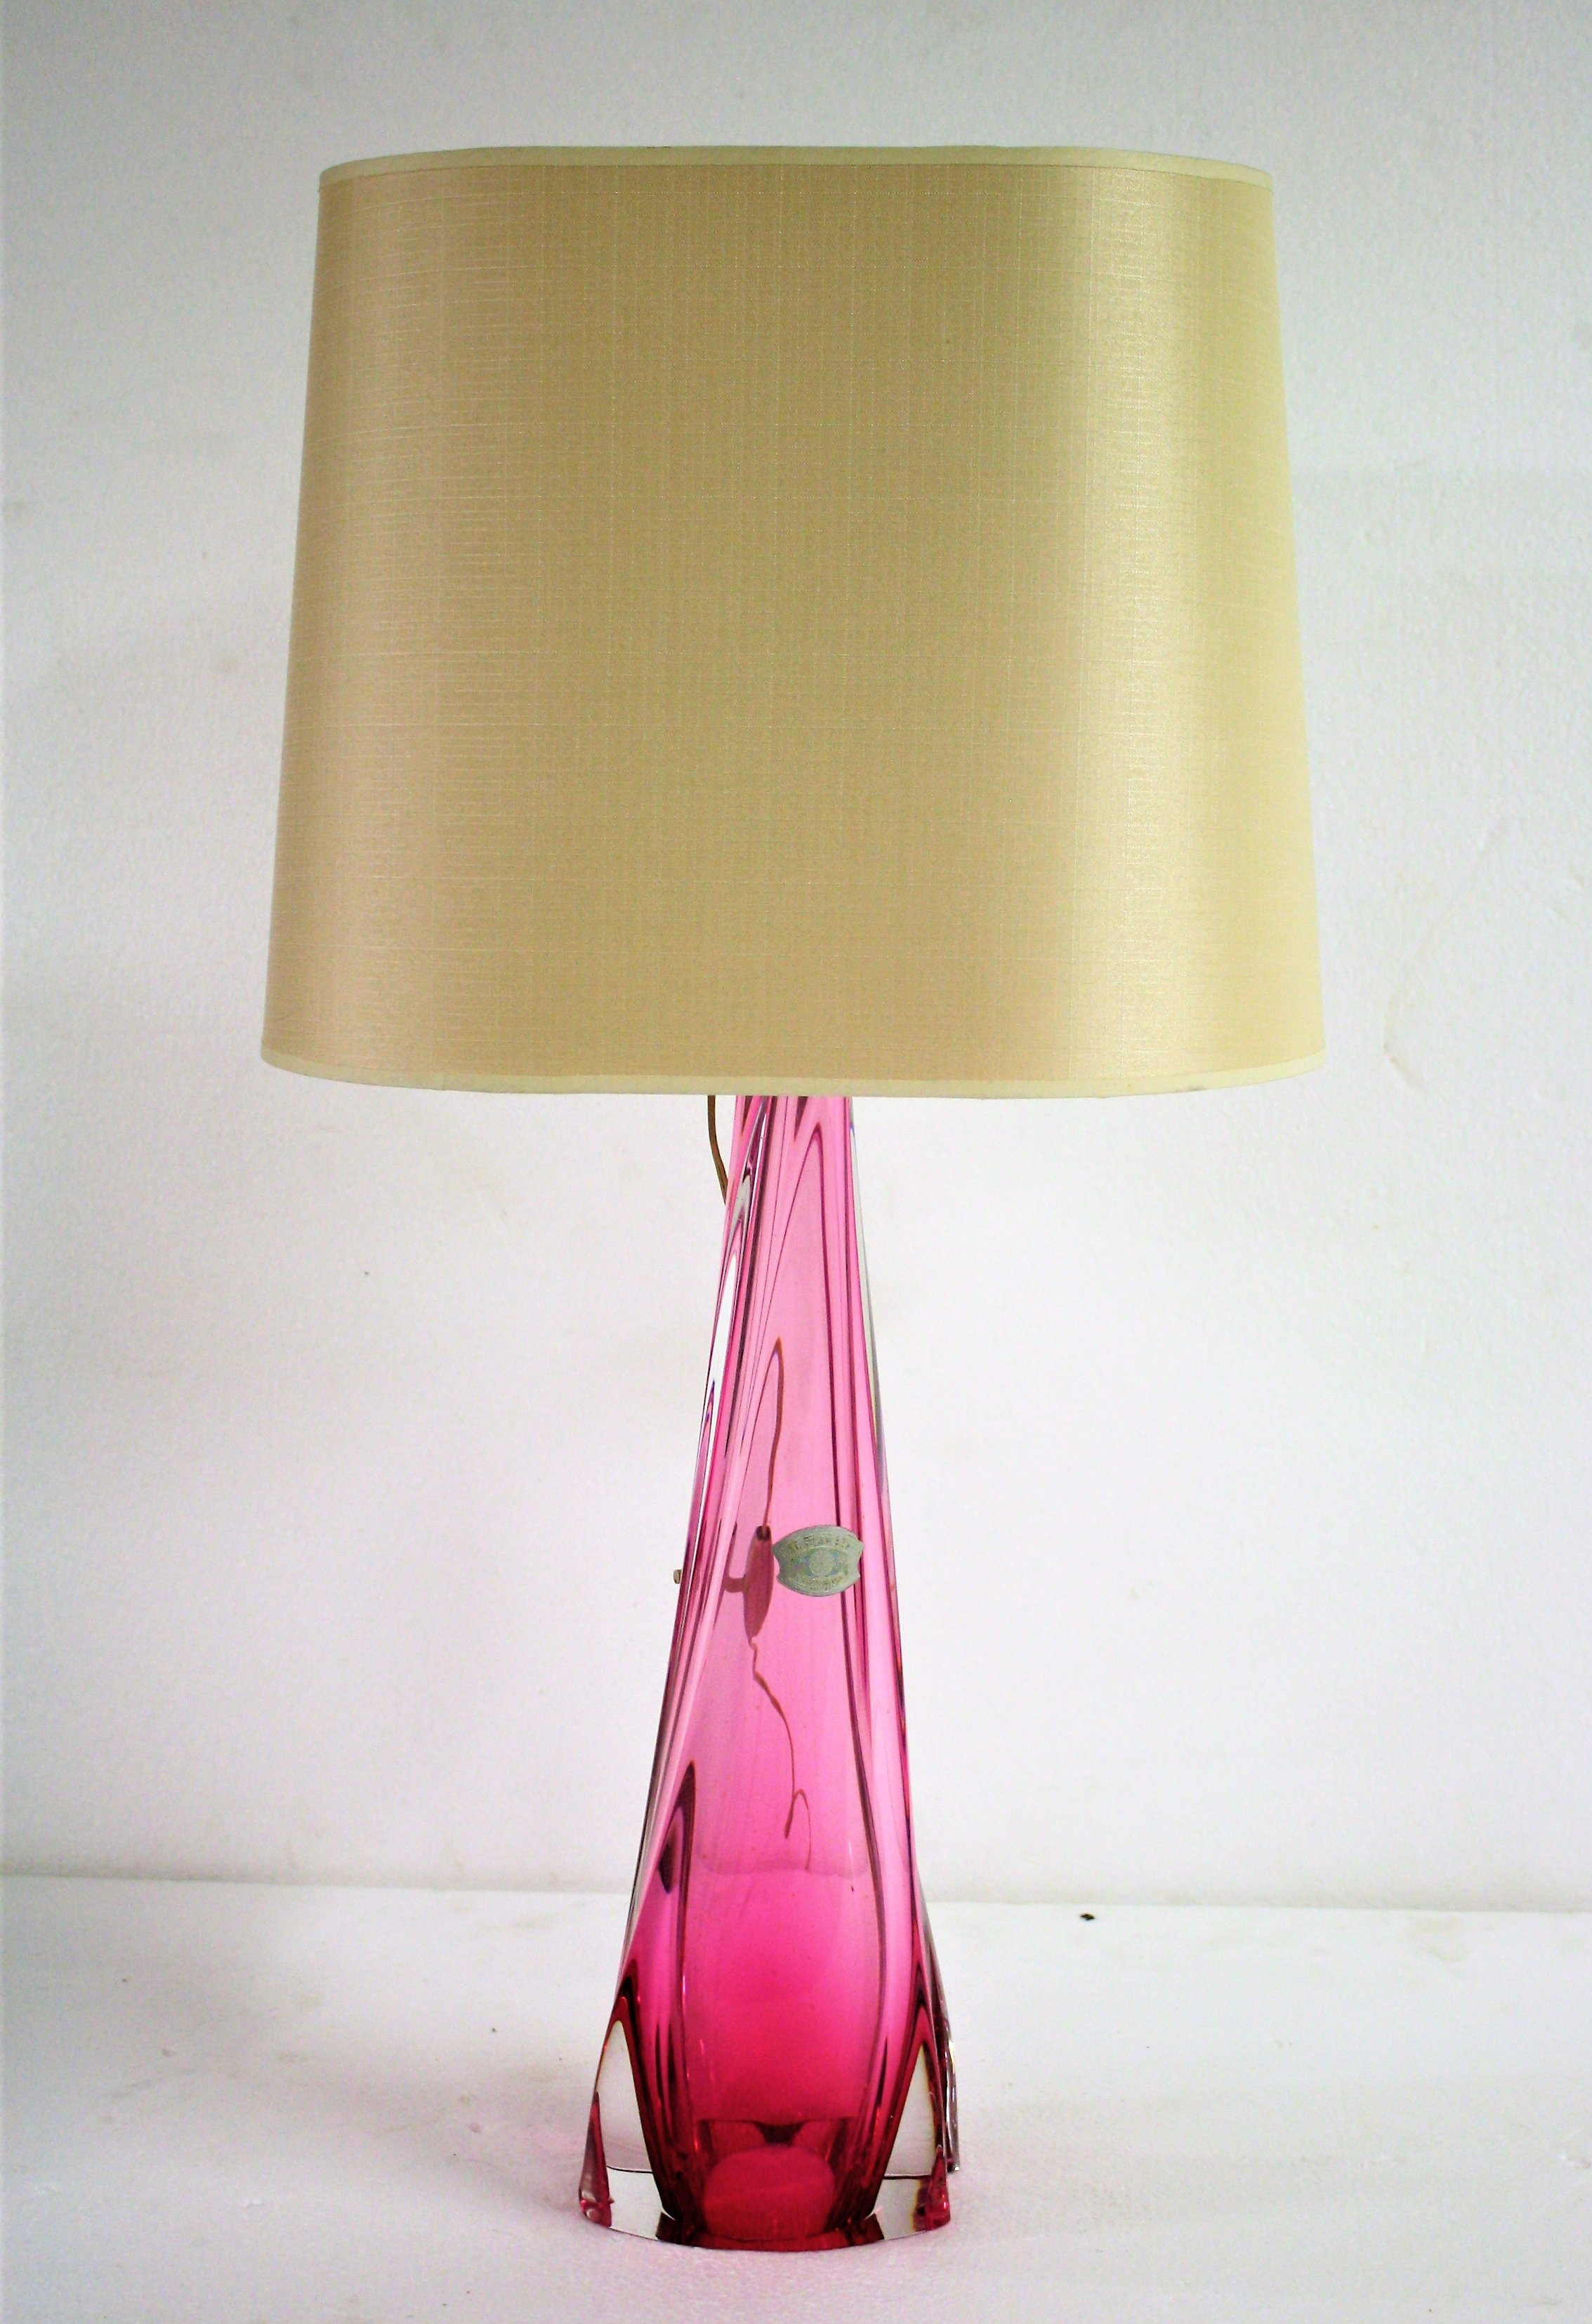 Rare Large Val St Lambert Pink Crystal Table Lamp 1960 S Belgium